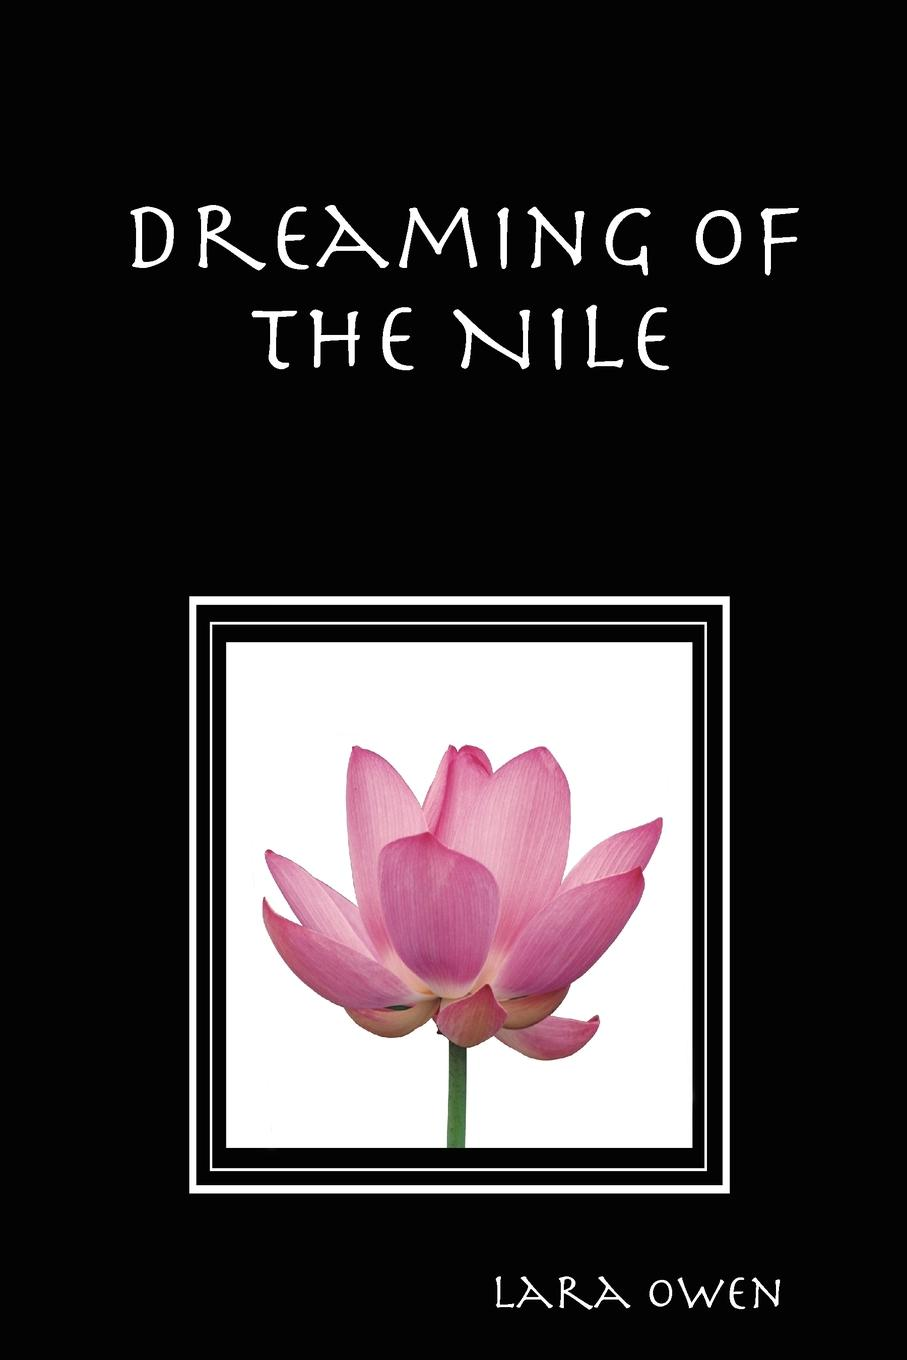 Dreaming of the Nile Dreaming of the Nile is a novel about a woman's spiritual quest...